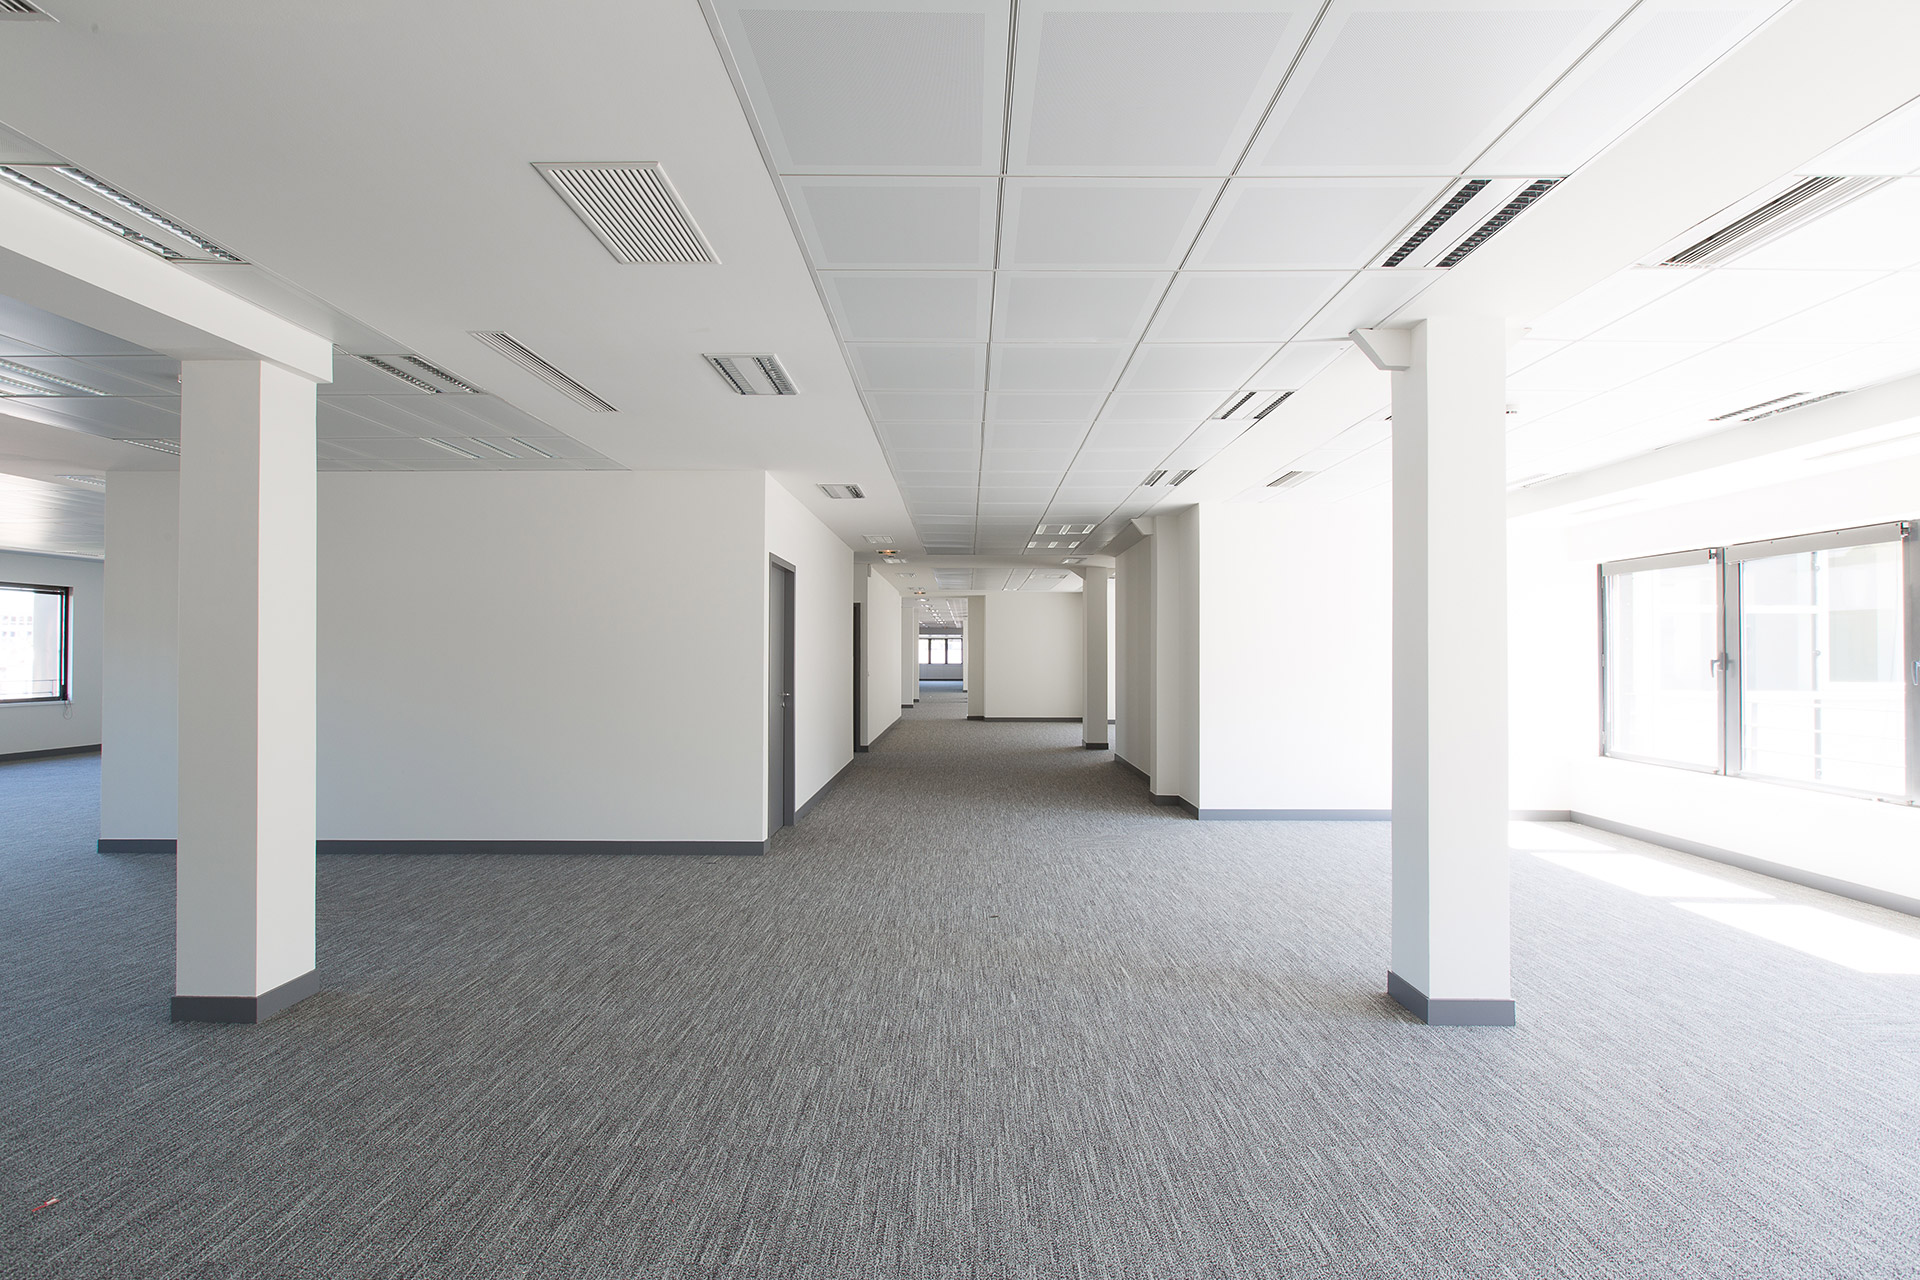 large office space. Design And Delivery Of A Very Large Office Space - RREEF France E